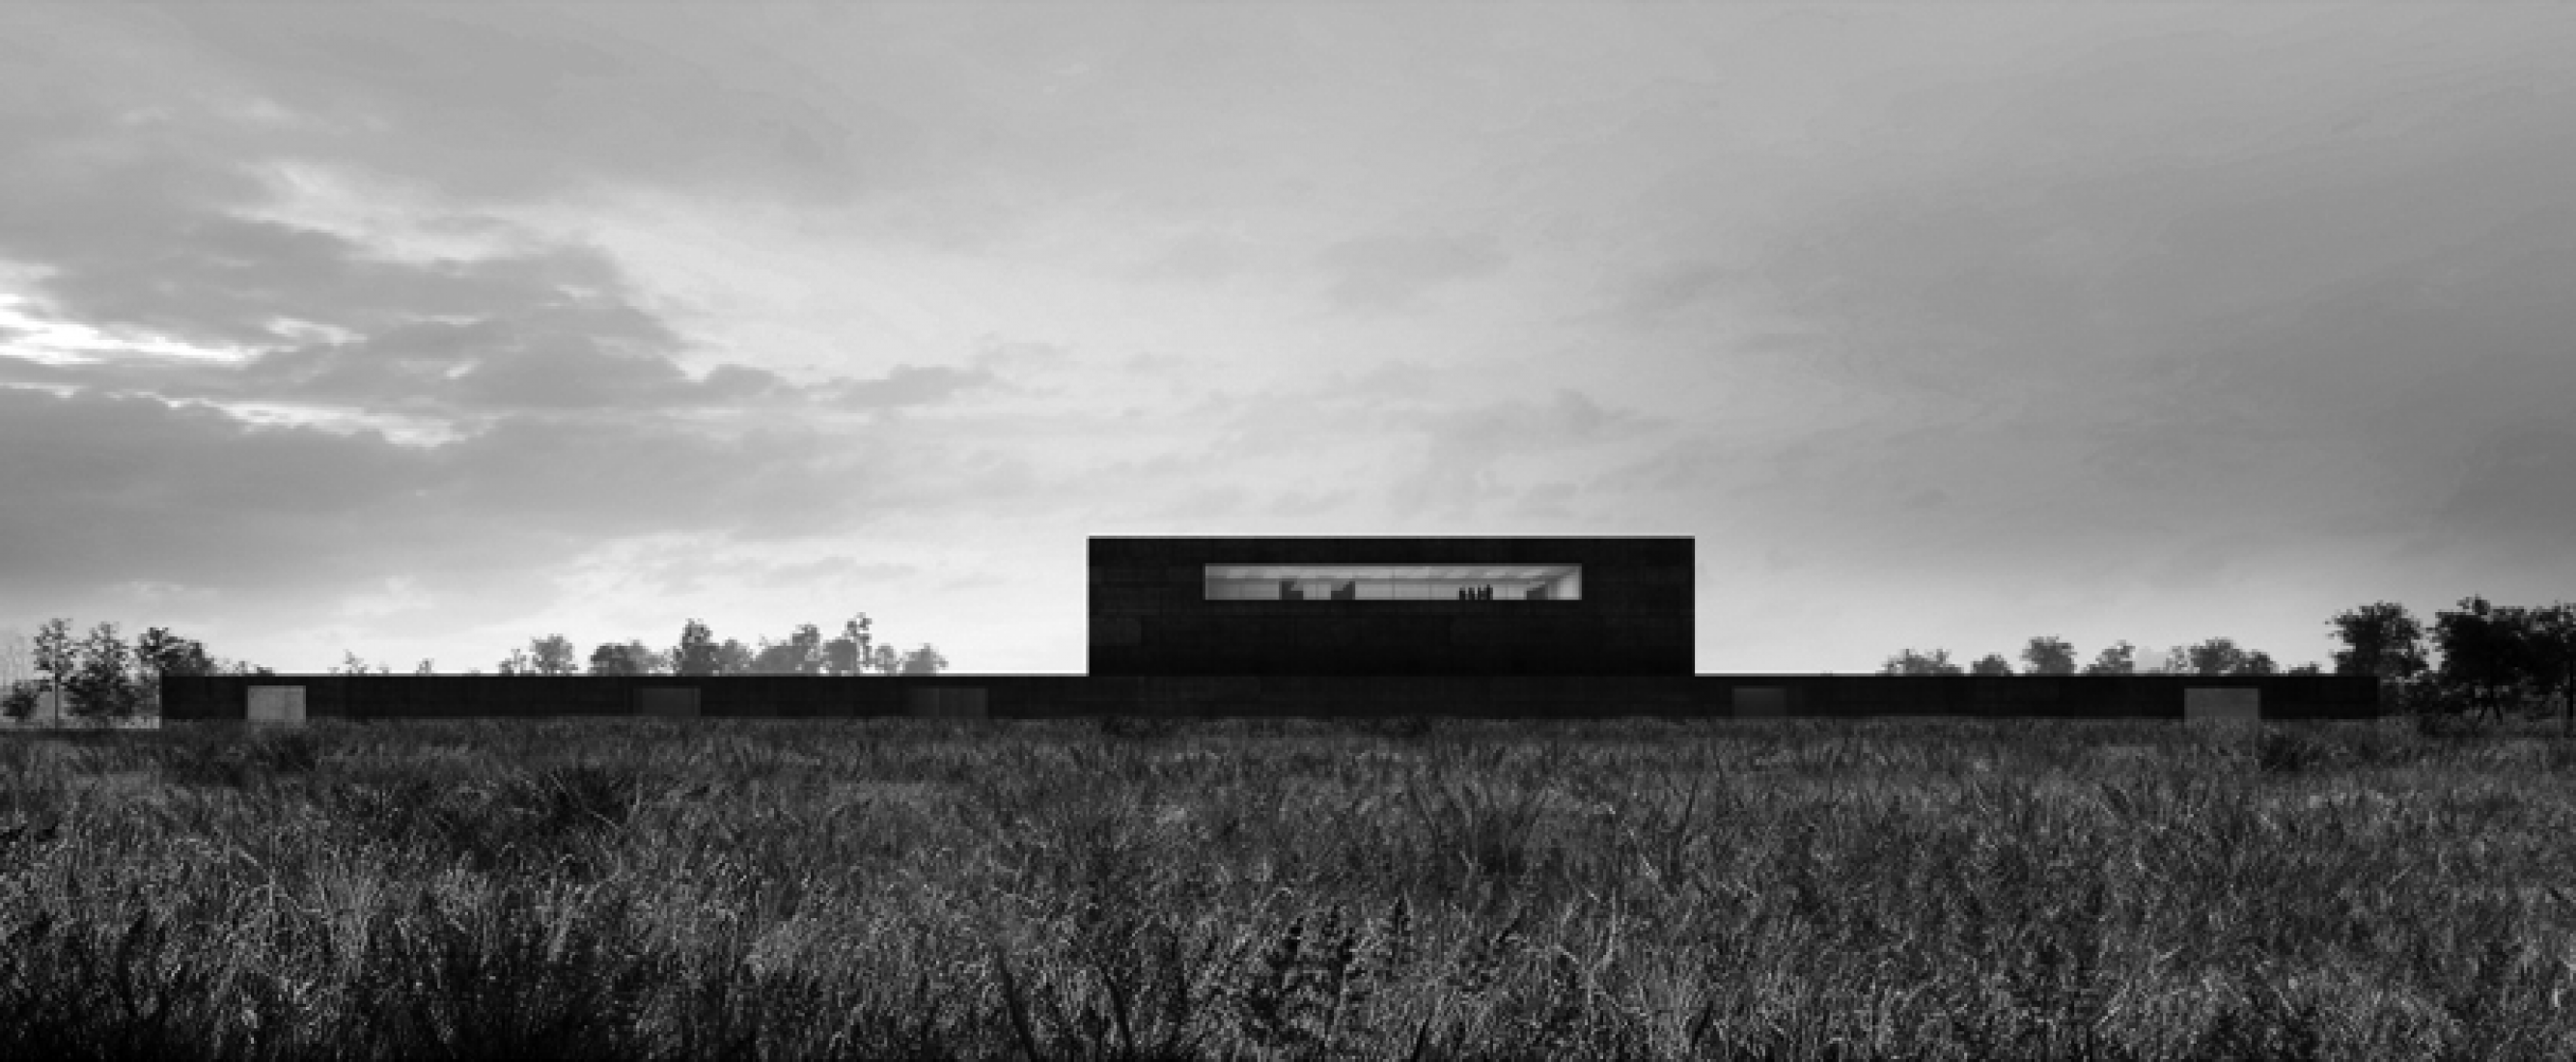 External image of the competition for the Reserves of the Louvre Museum in Liènvin by Campo Baeza y Gabrion. Courtesy of Estudio Campo Baeza.